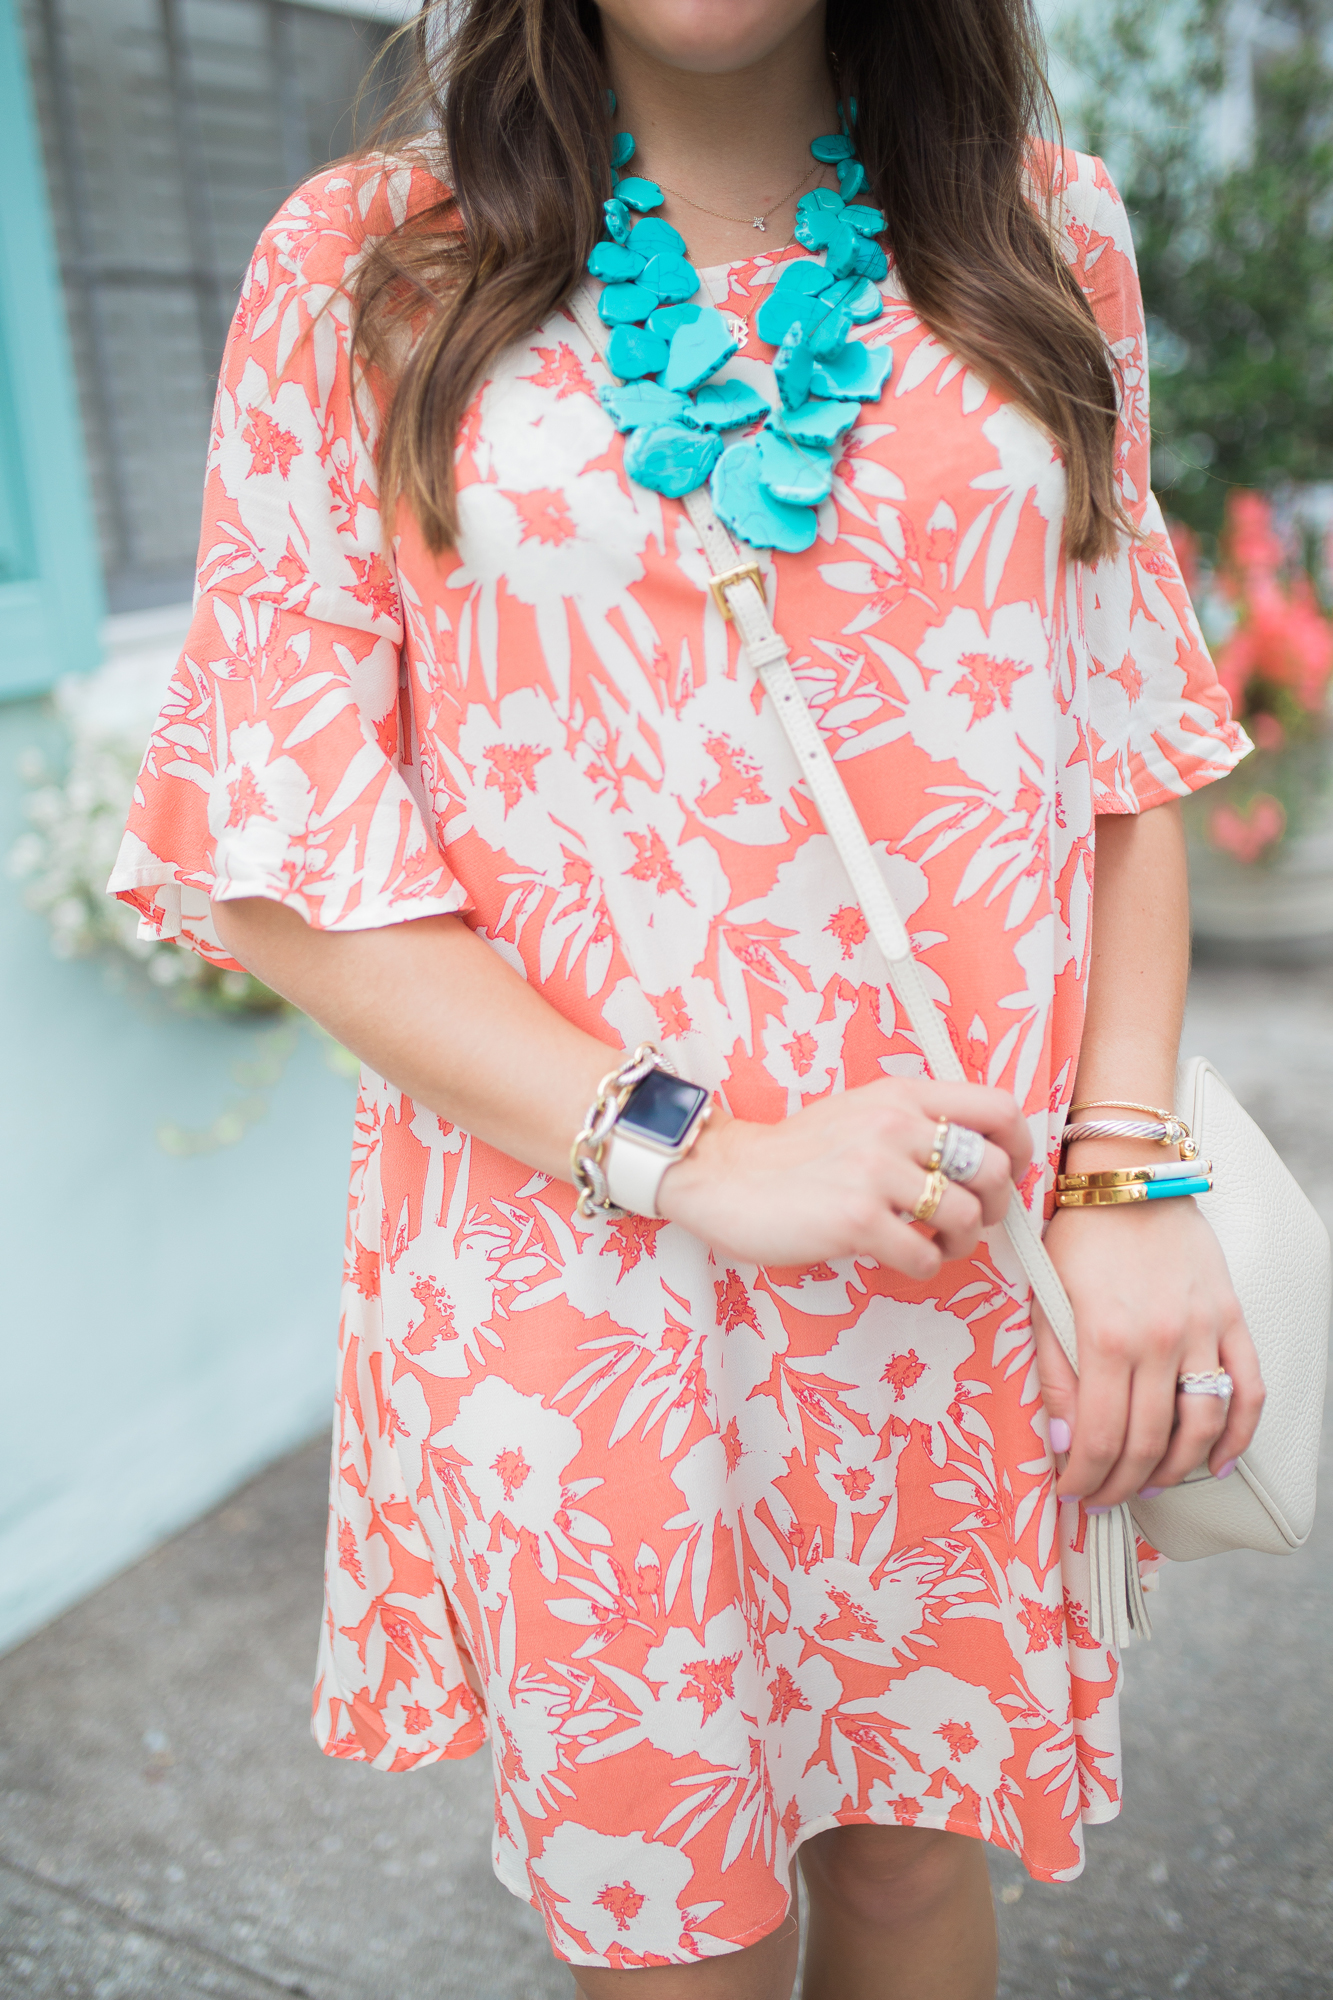 Orange Floral Dress / BaubleBar Turquoise Necklace